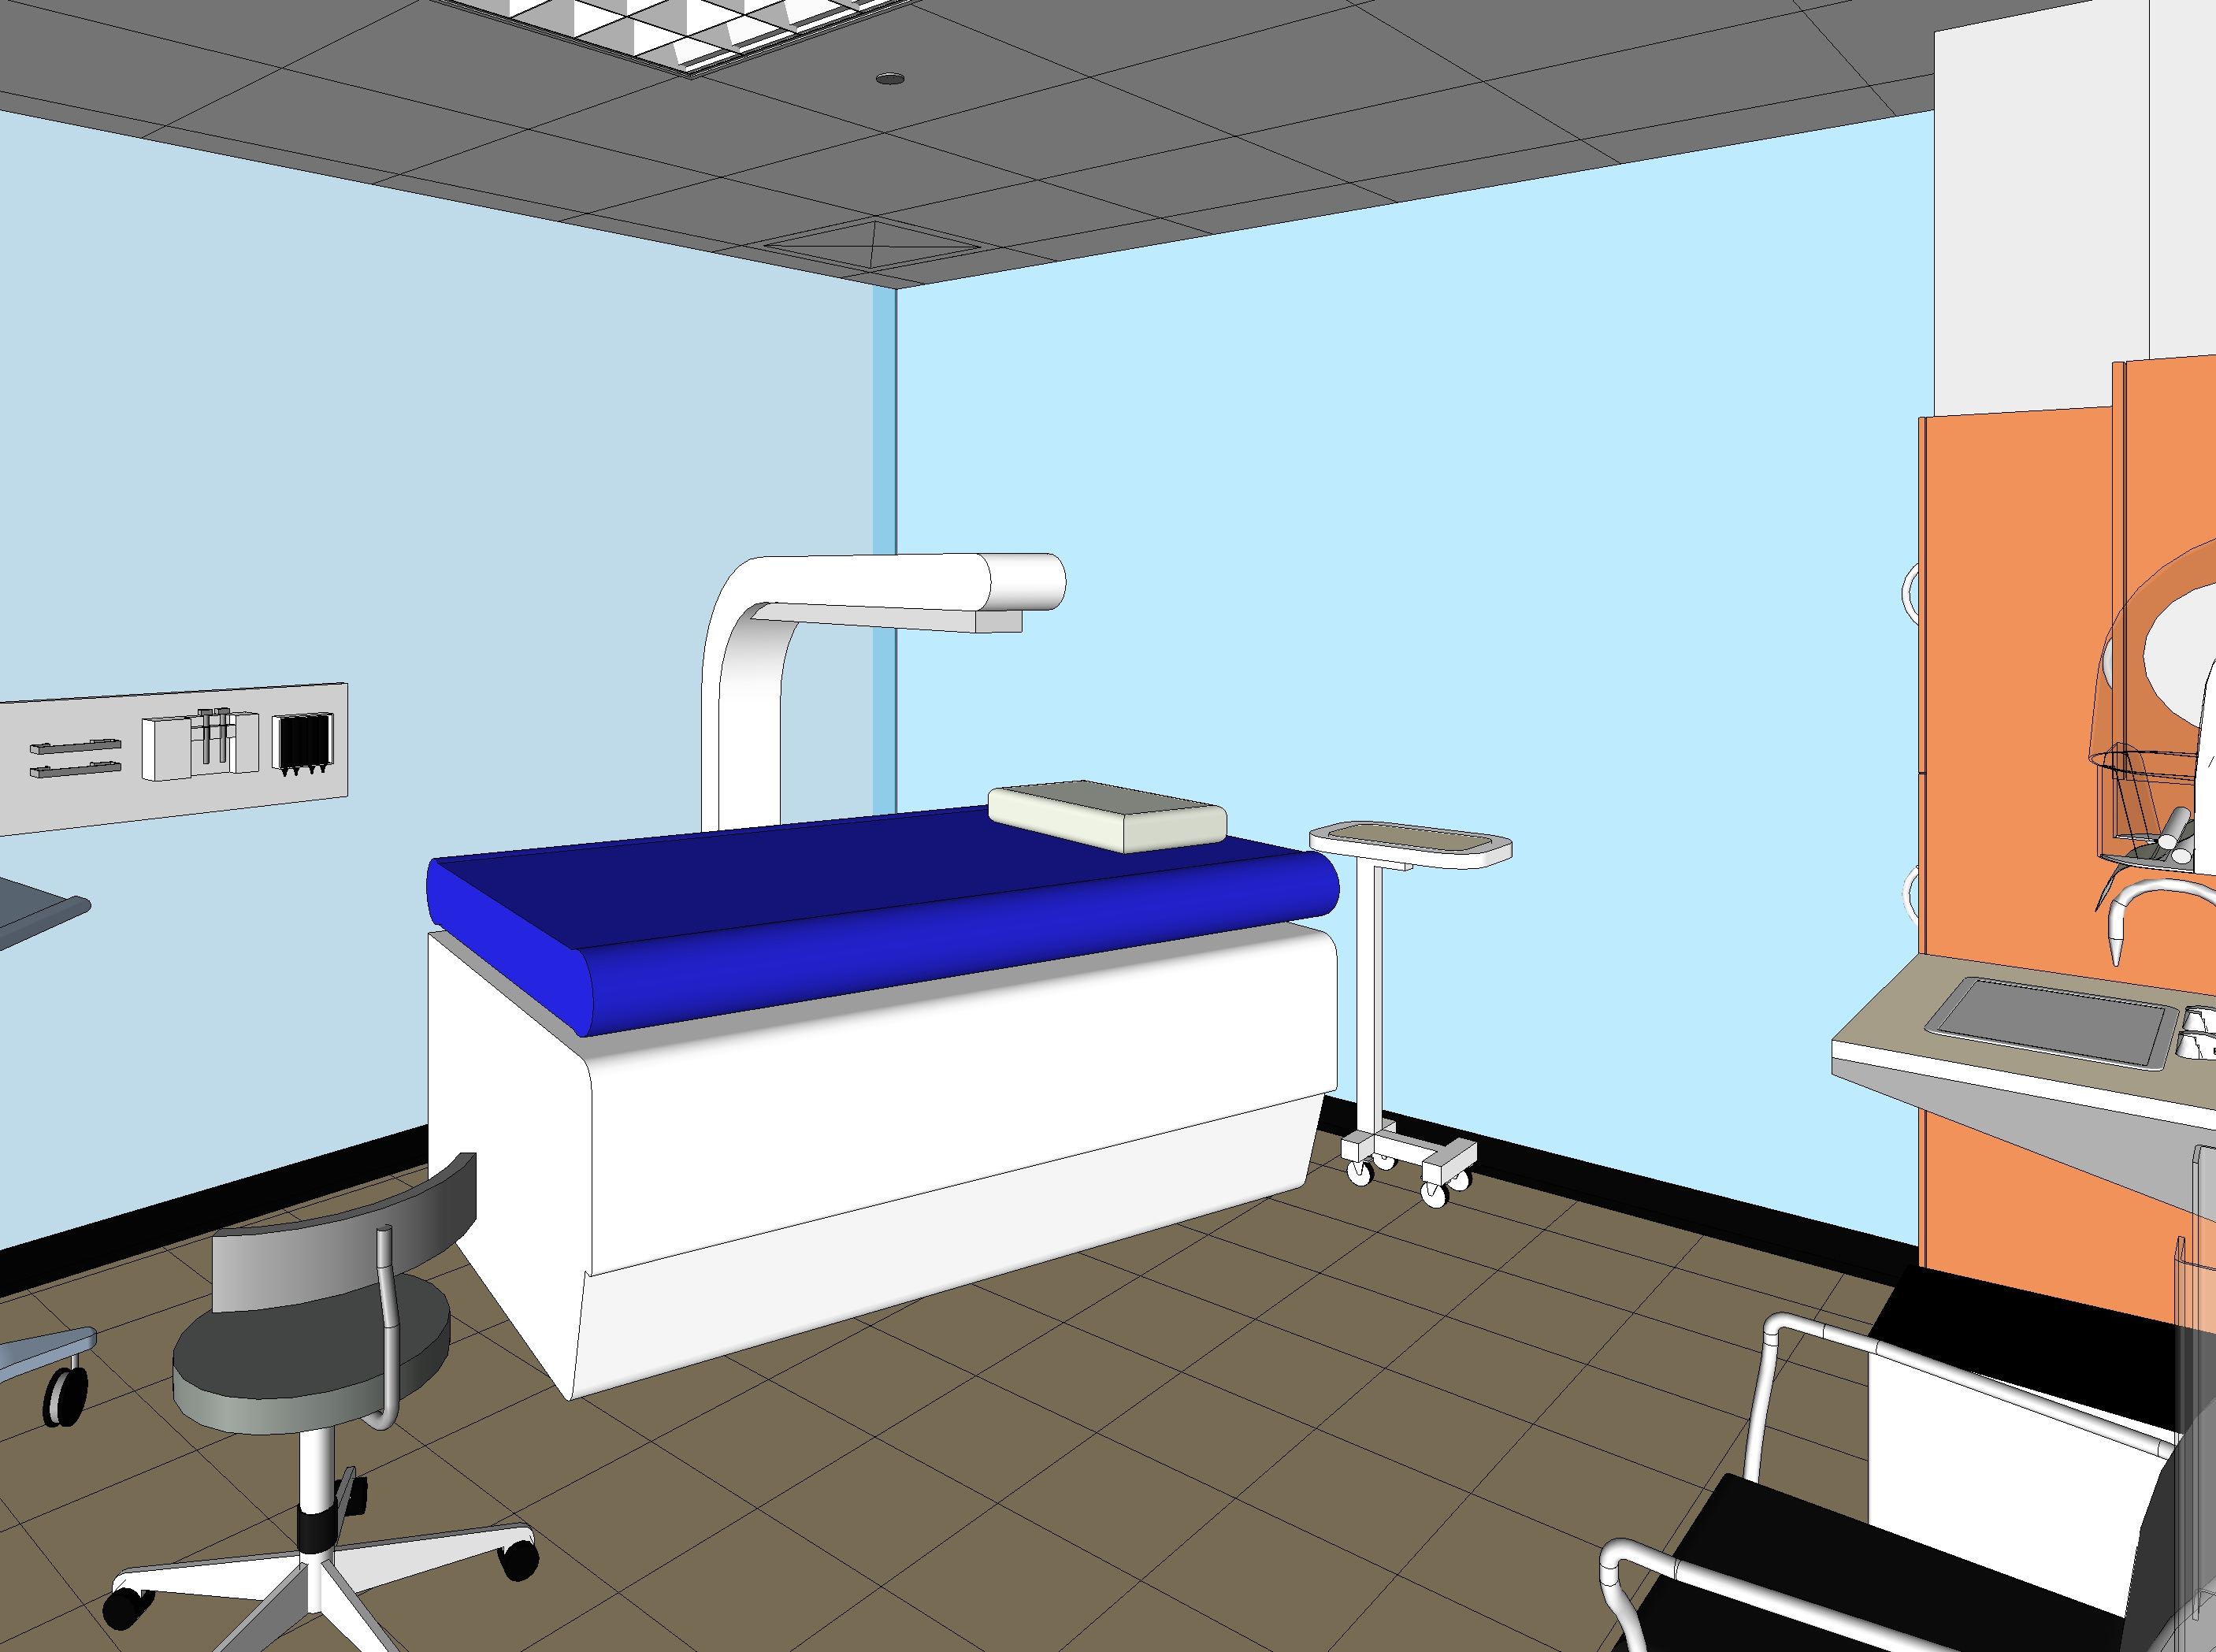 Medical_densitometry_room_reed_3d